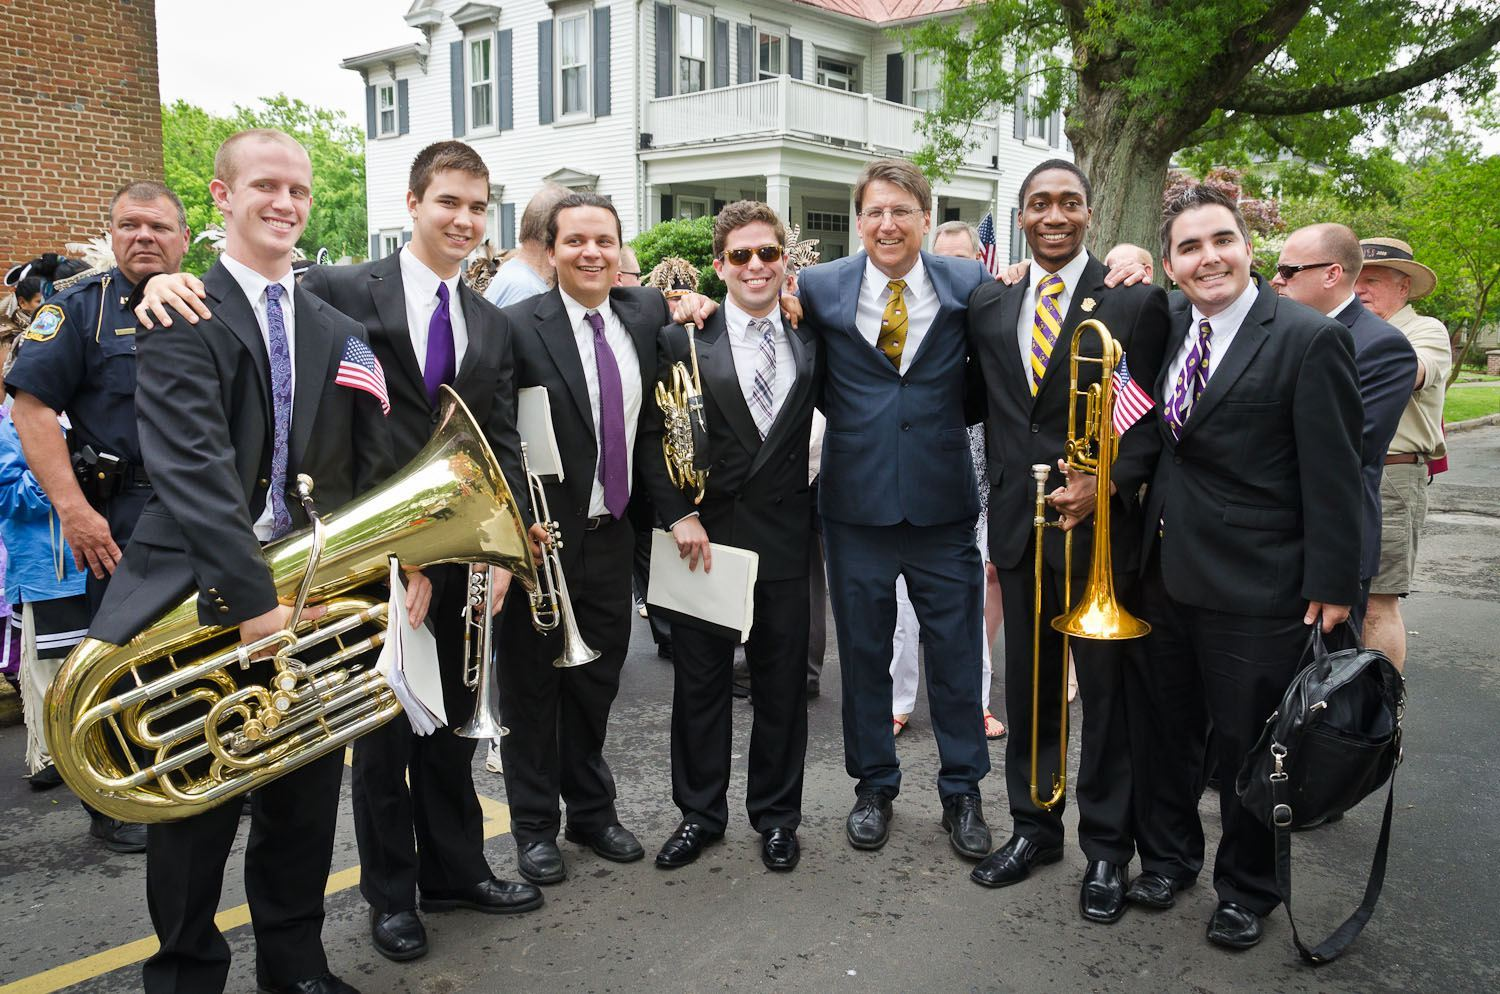 Gov McCrory and the band